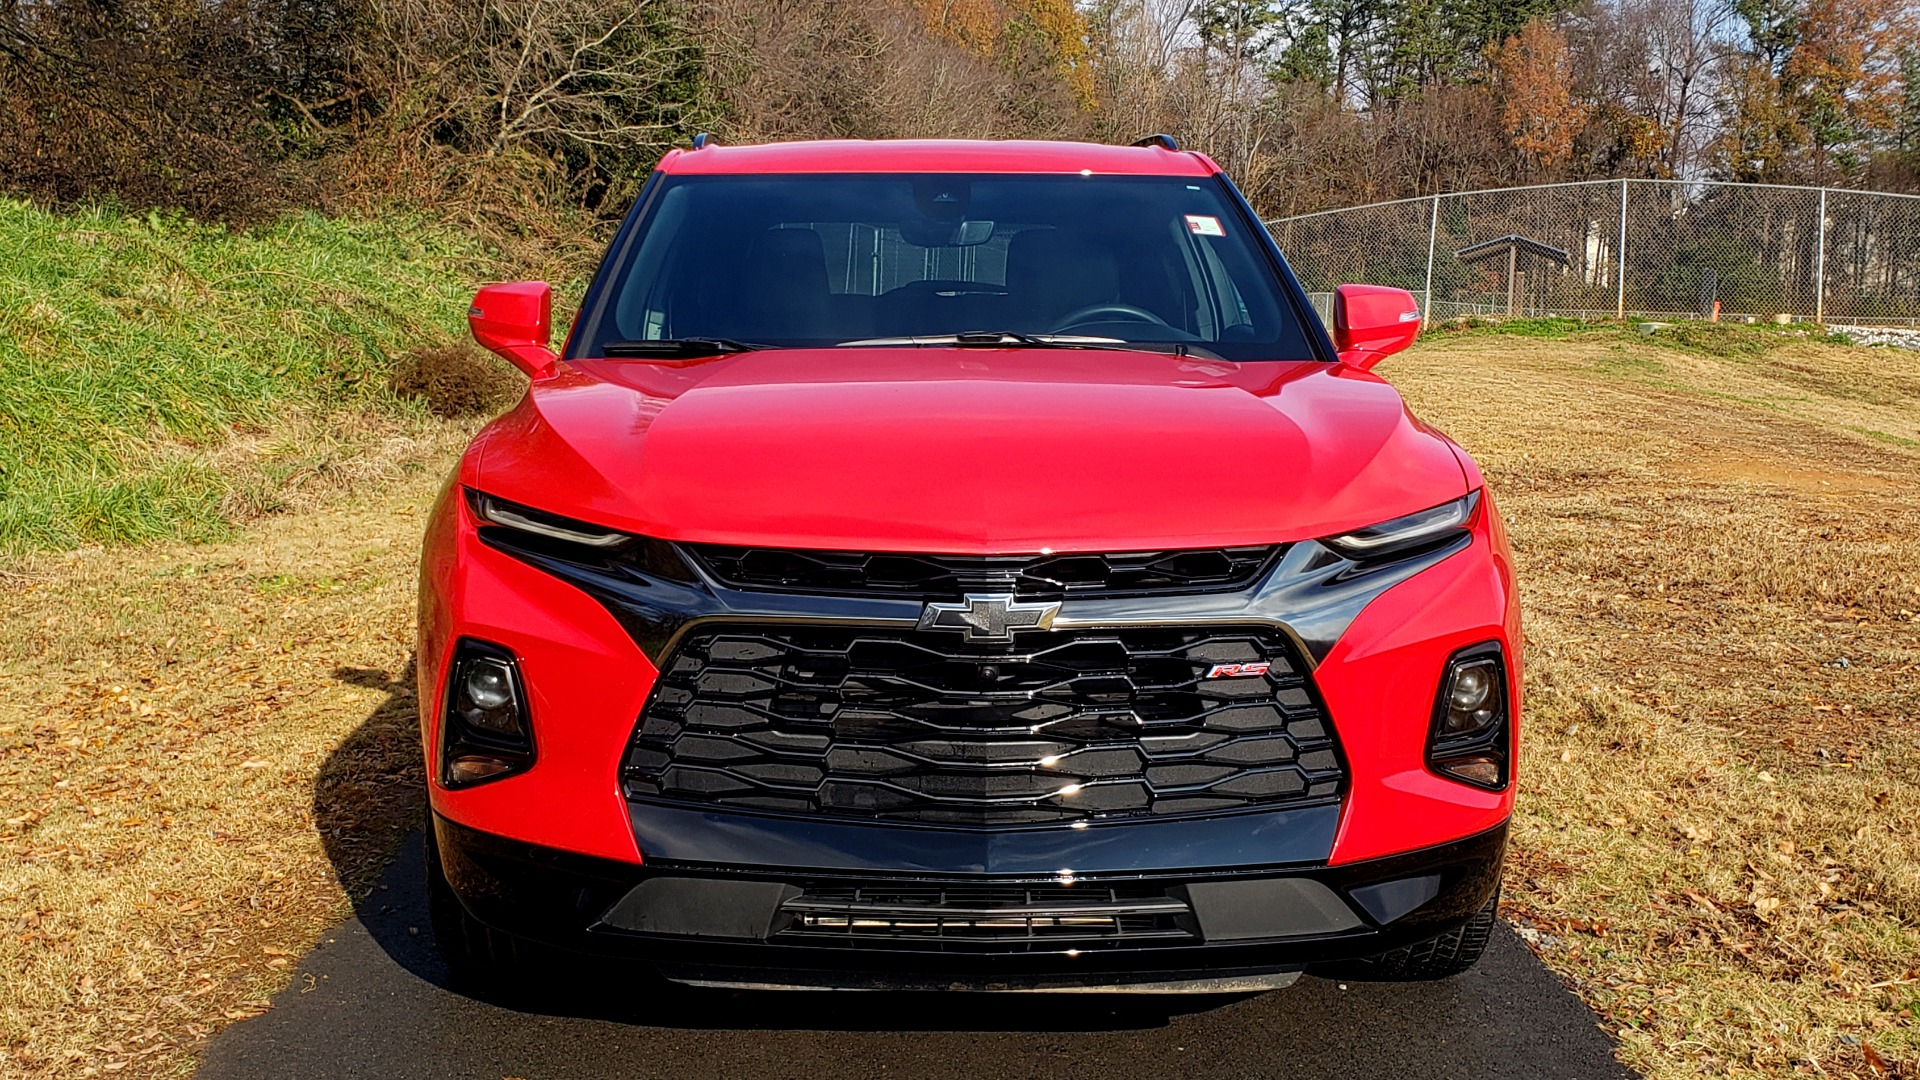 Used 2020 Chevrolet BLAZER RS / 3.6L V6 / 9-SPD AUTO / NAV / BOSE / HTD STS / REARVIEW for sale Sold at Formula Imports in Charlotte NC 28227 10